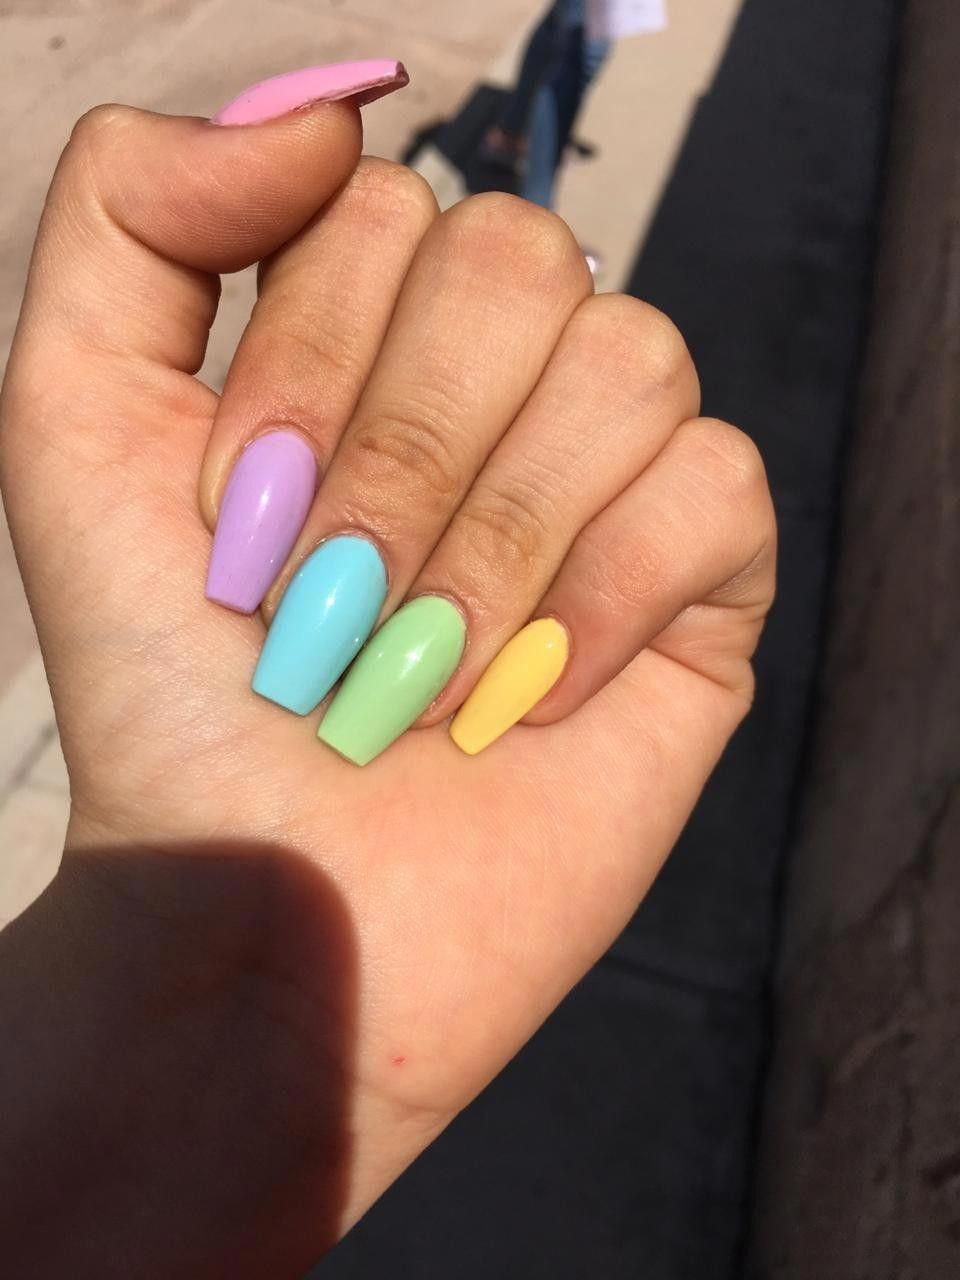 Increibles Unas Trendy Pastelnails Nails For Kids Summer Acrylic Nails Best Acrylic Nails